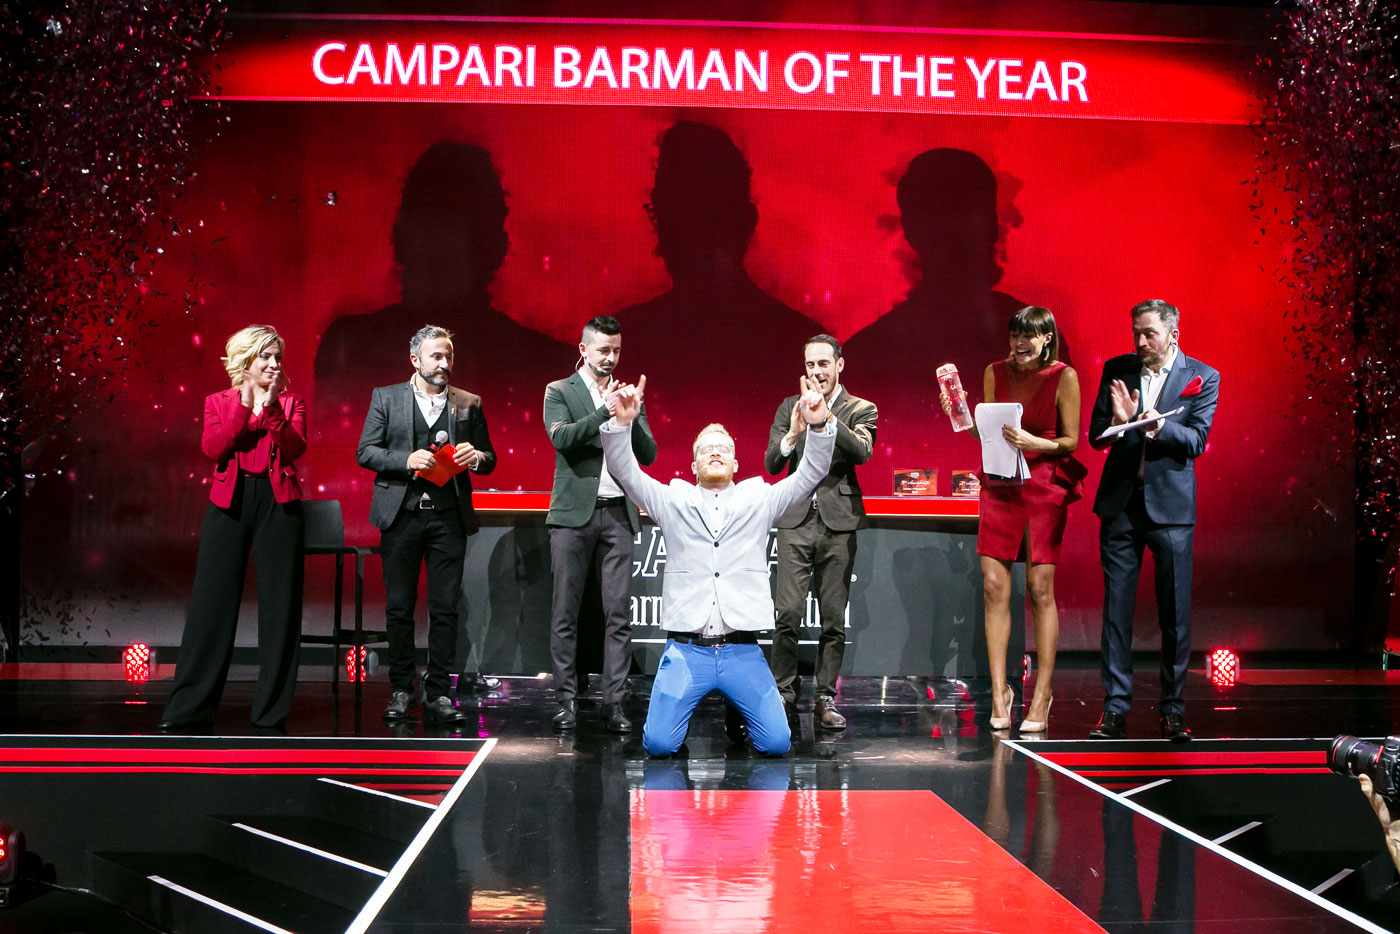 Campari-barman-of-the-year-alessandro-pitanti